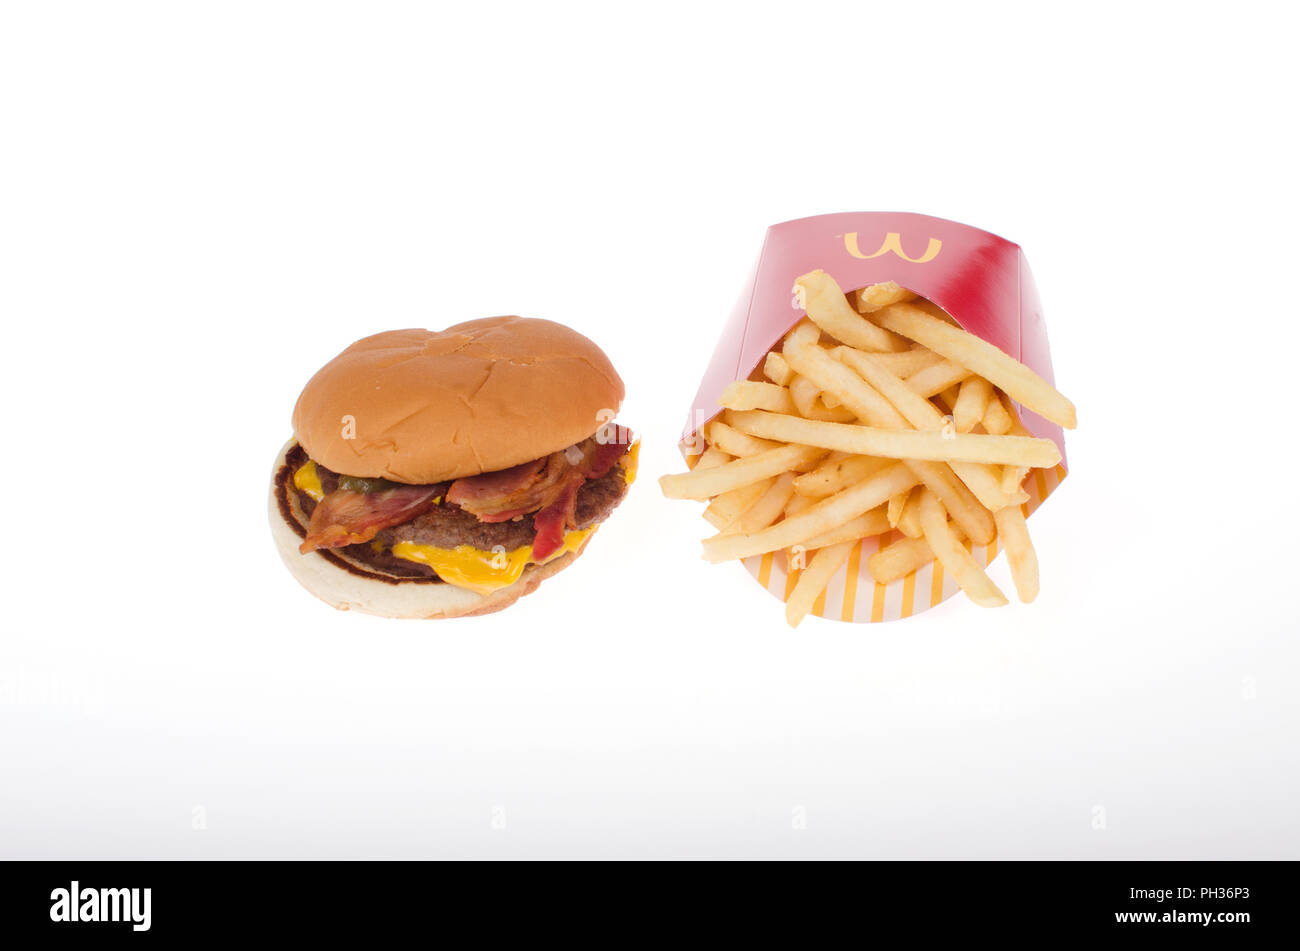 McDonalds Bacon McDouble Cheeseburger with french fries - Stock Image